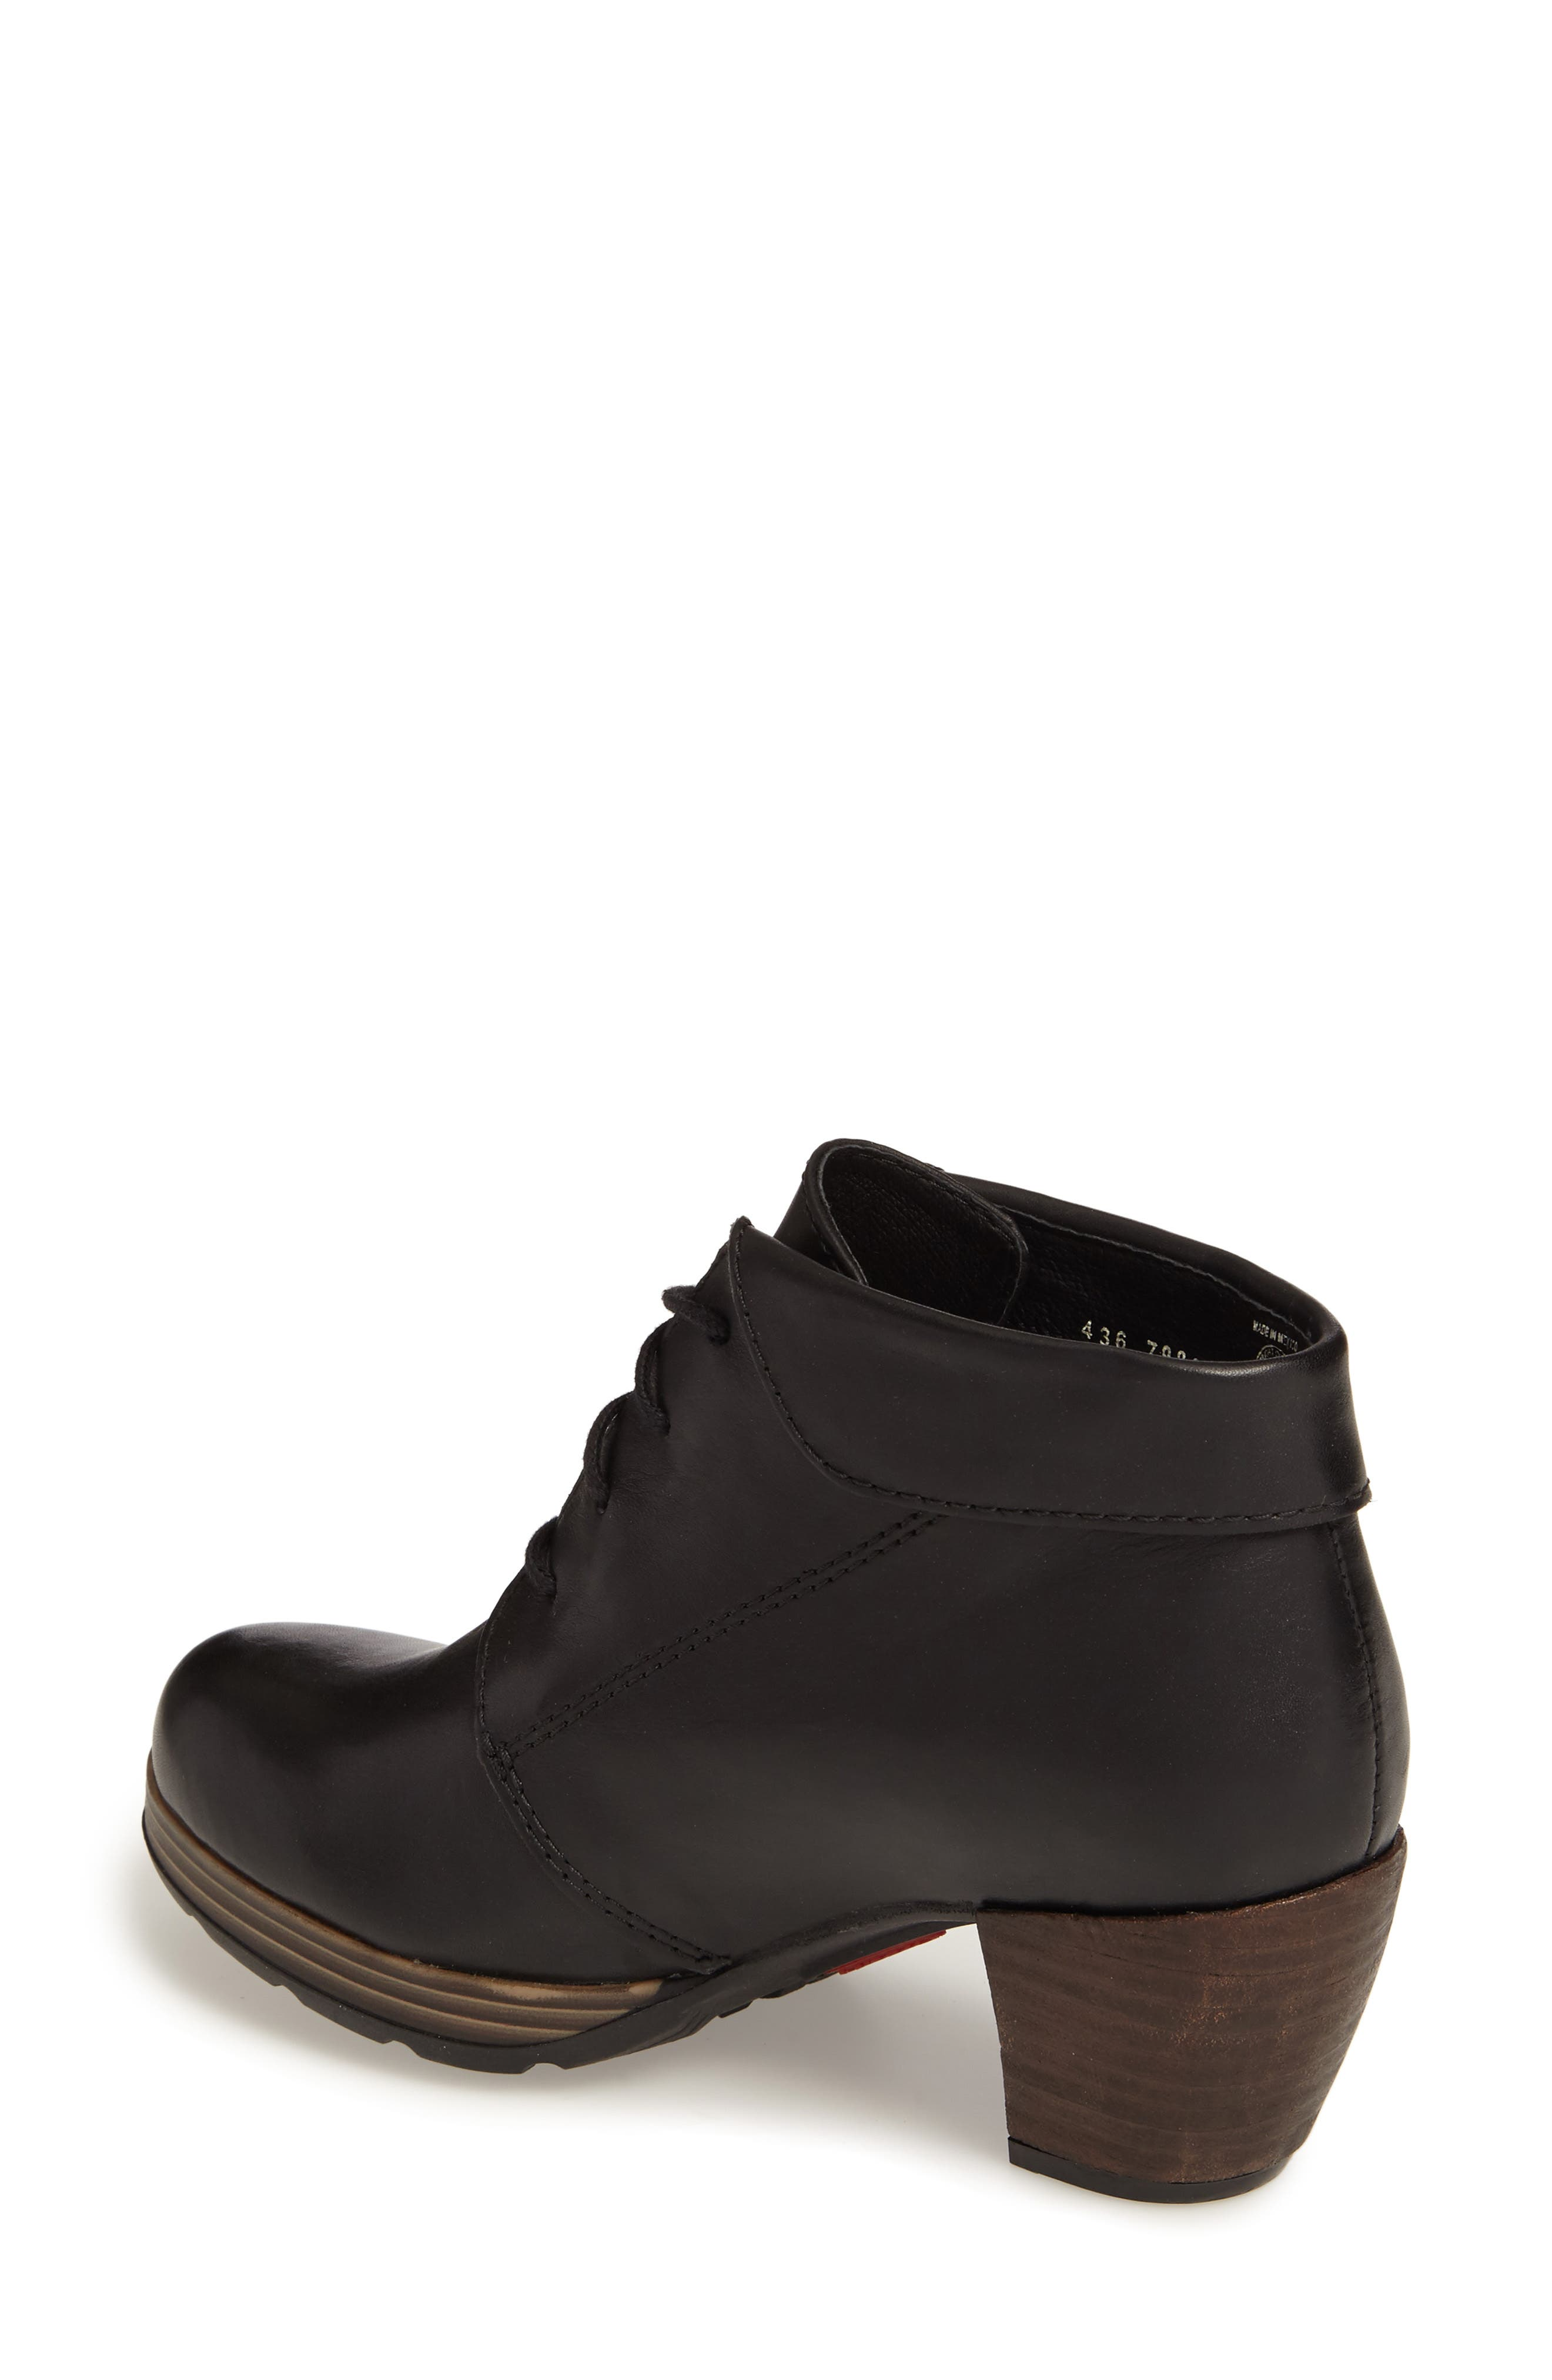 Jacquerie Lace-Up Bootie,                             Alternate thumbnail 2, color,                             Black Leather